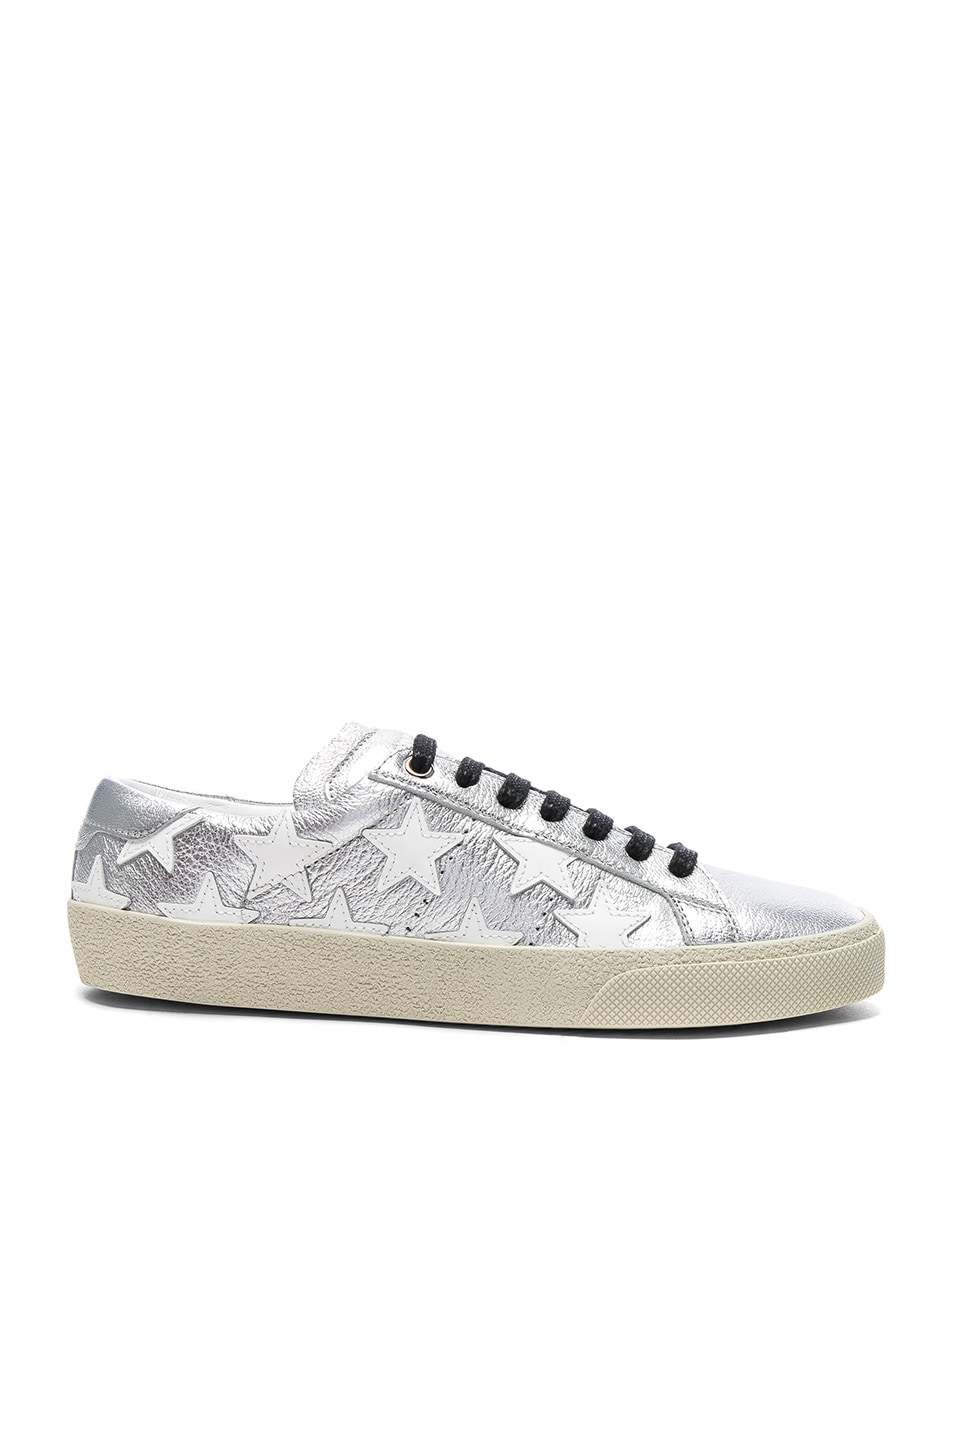 Image 1 of Saint Laurent Court Classic Star Leather Sneakers in Silver & Optic White